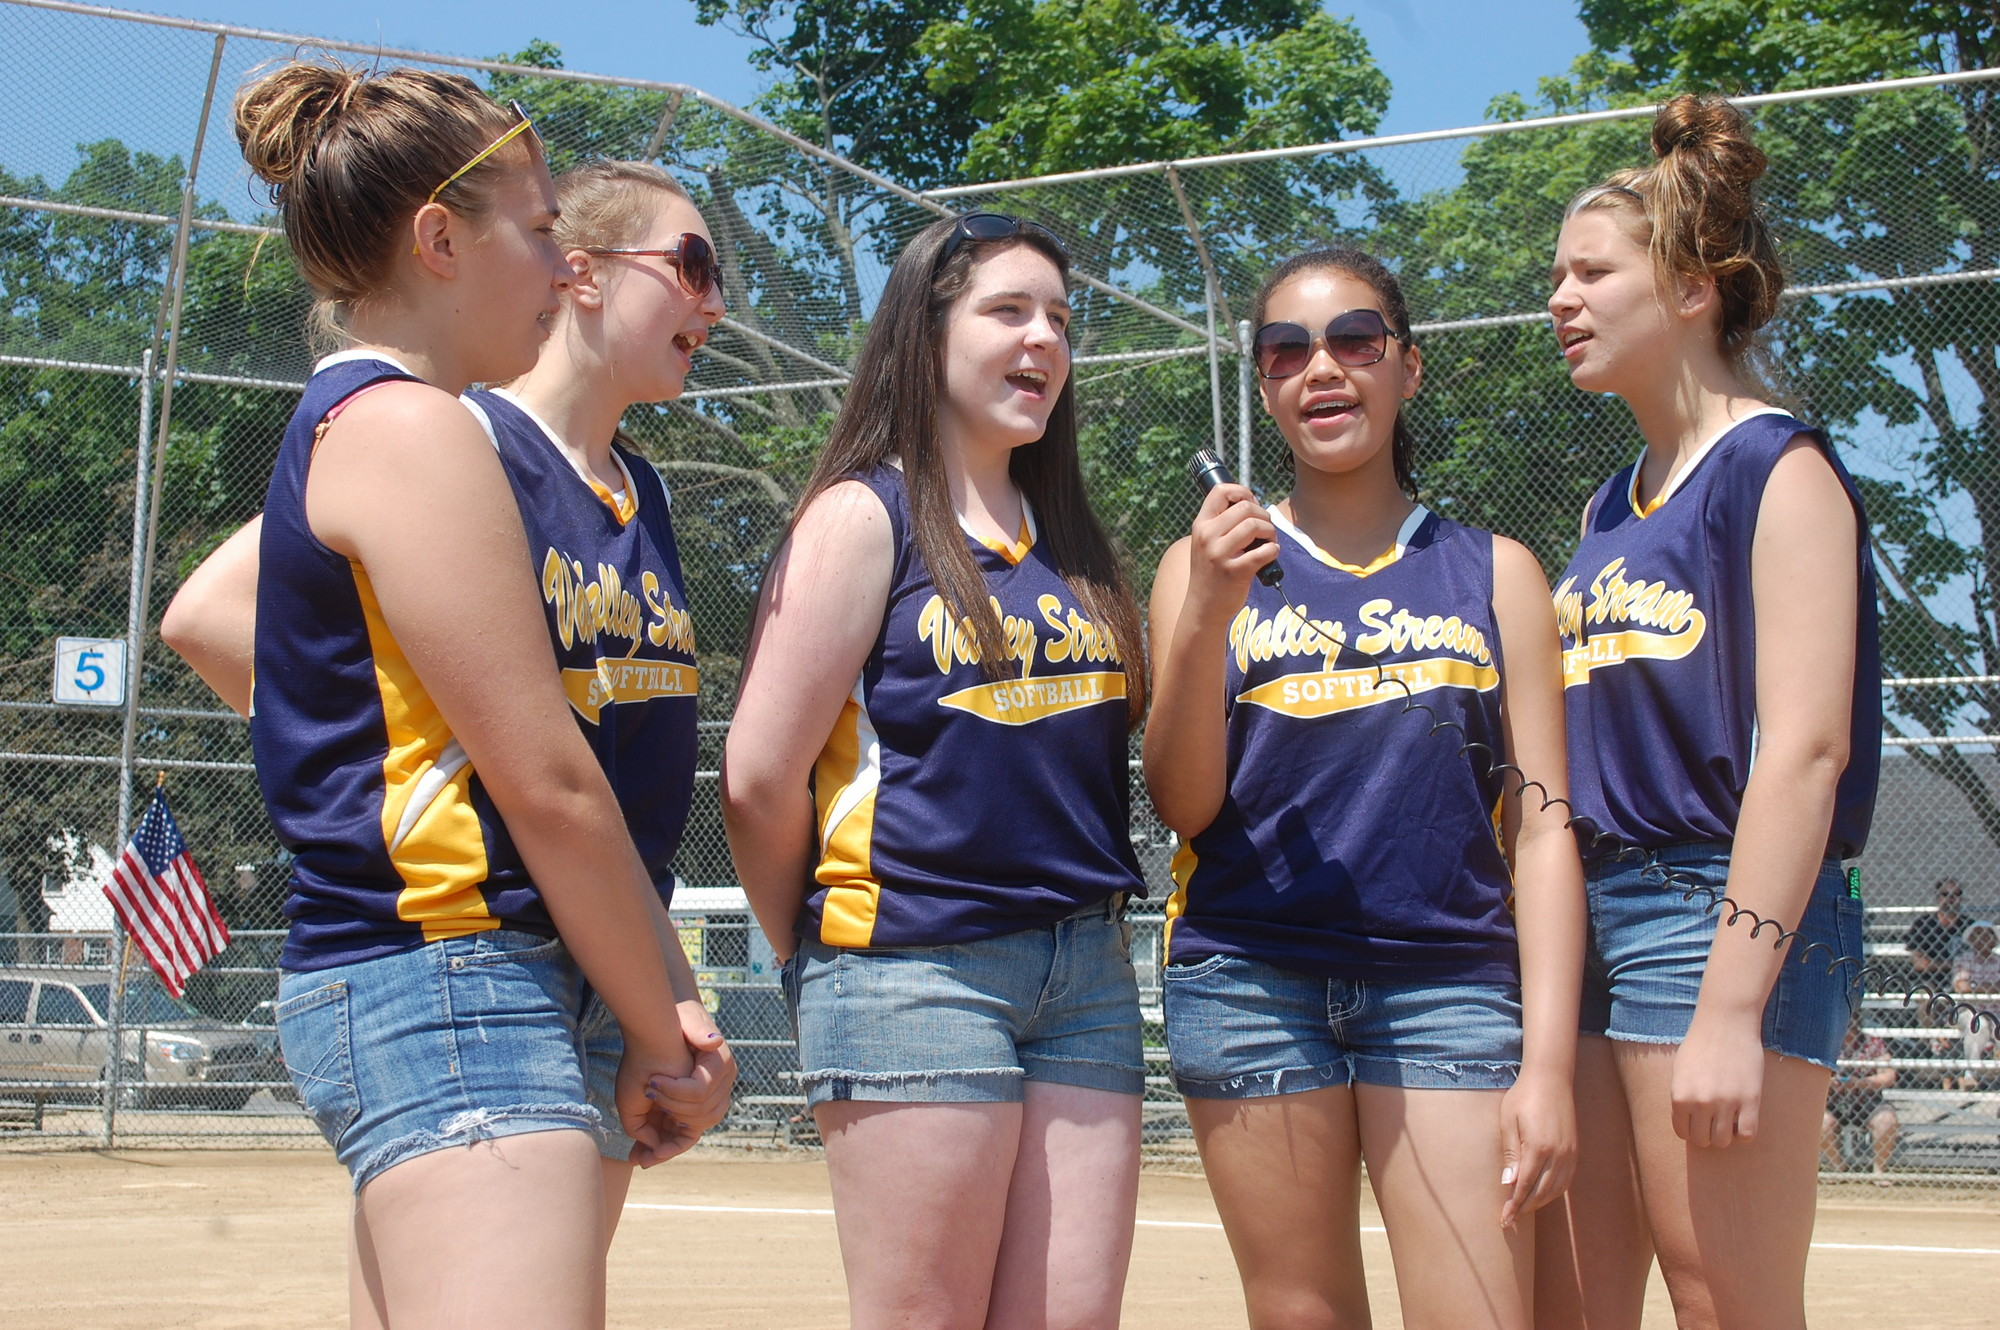 Softball players opened the ceremony by singing the National Anthem.